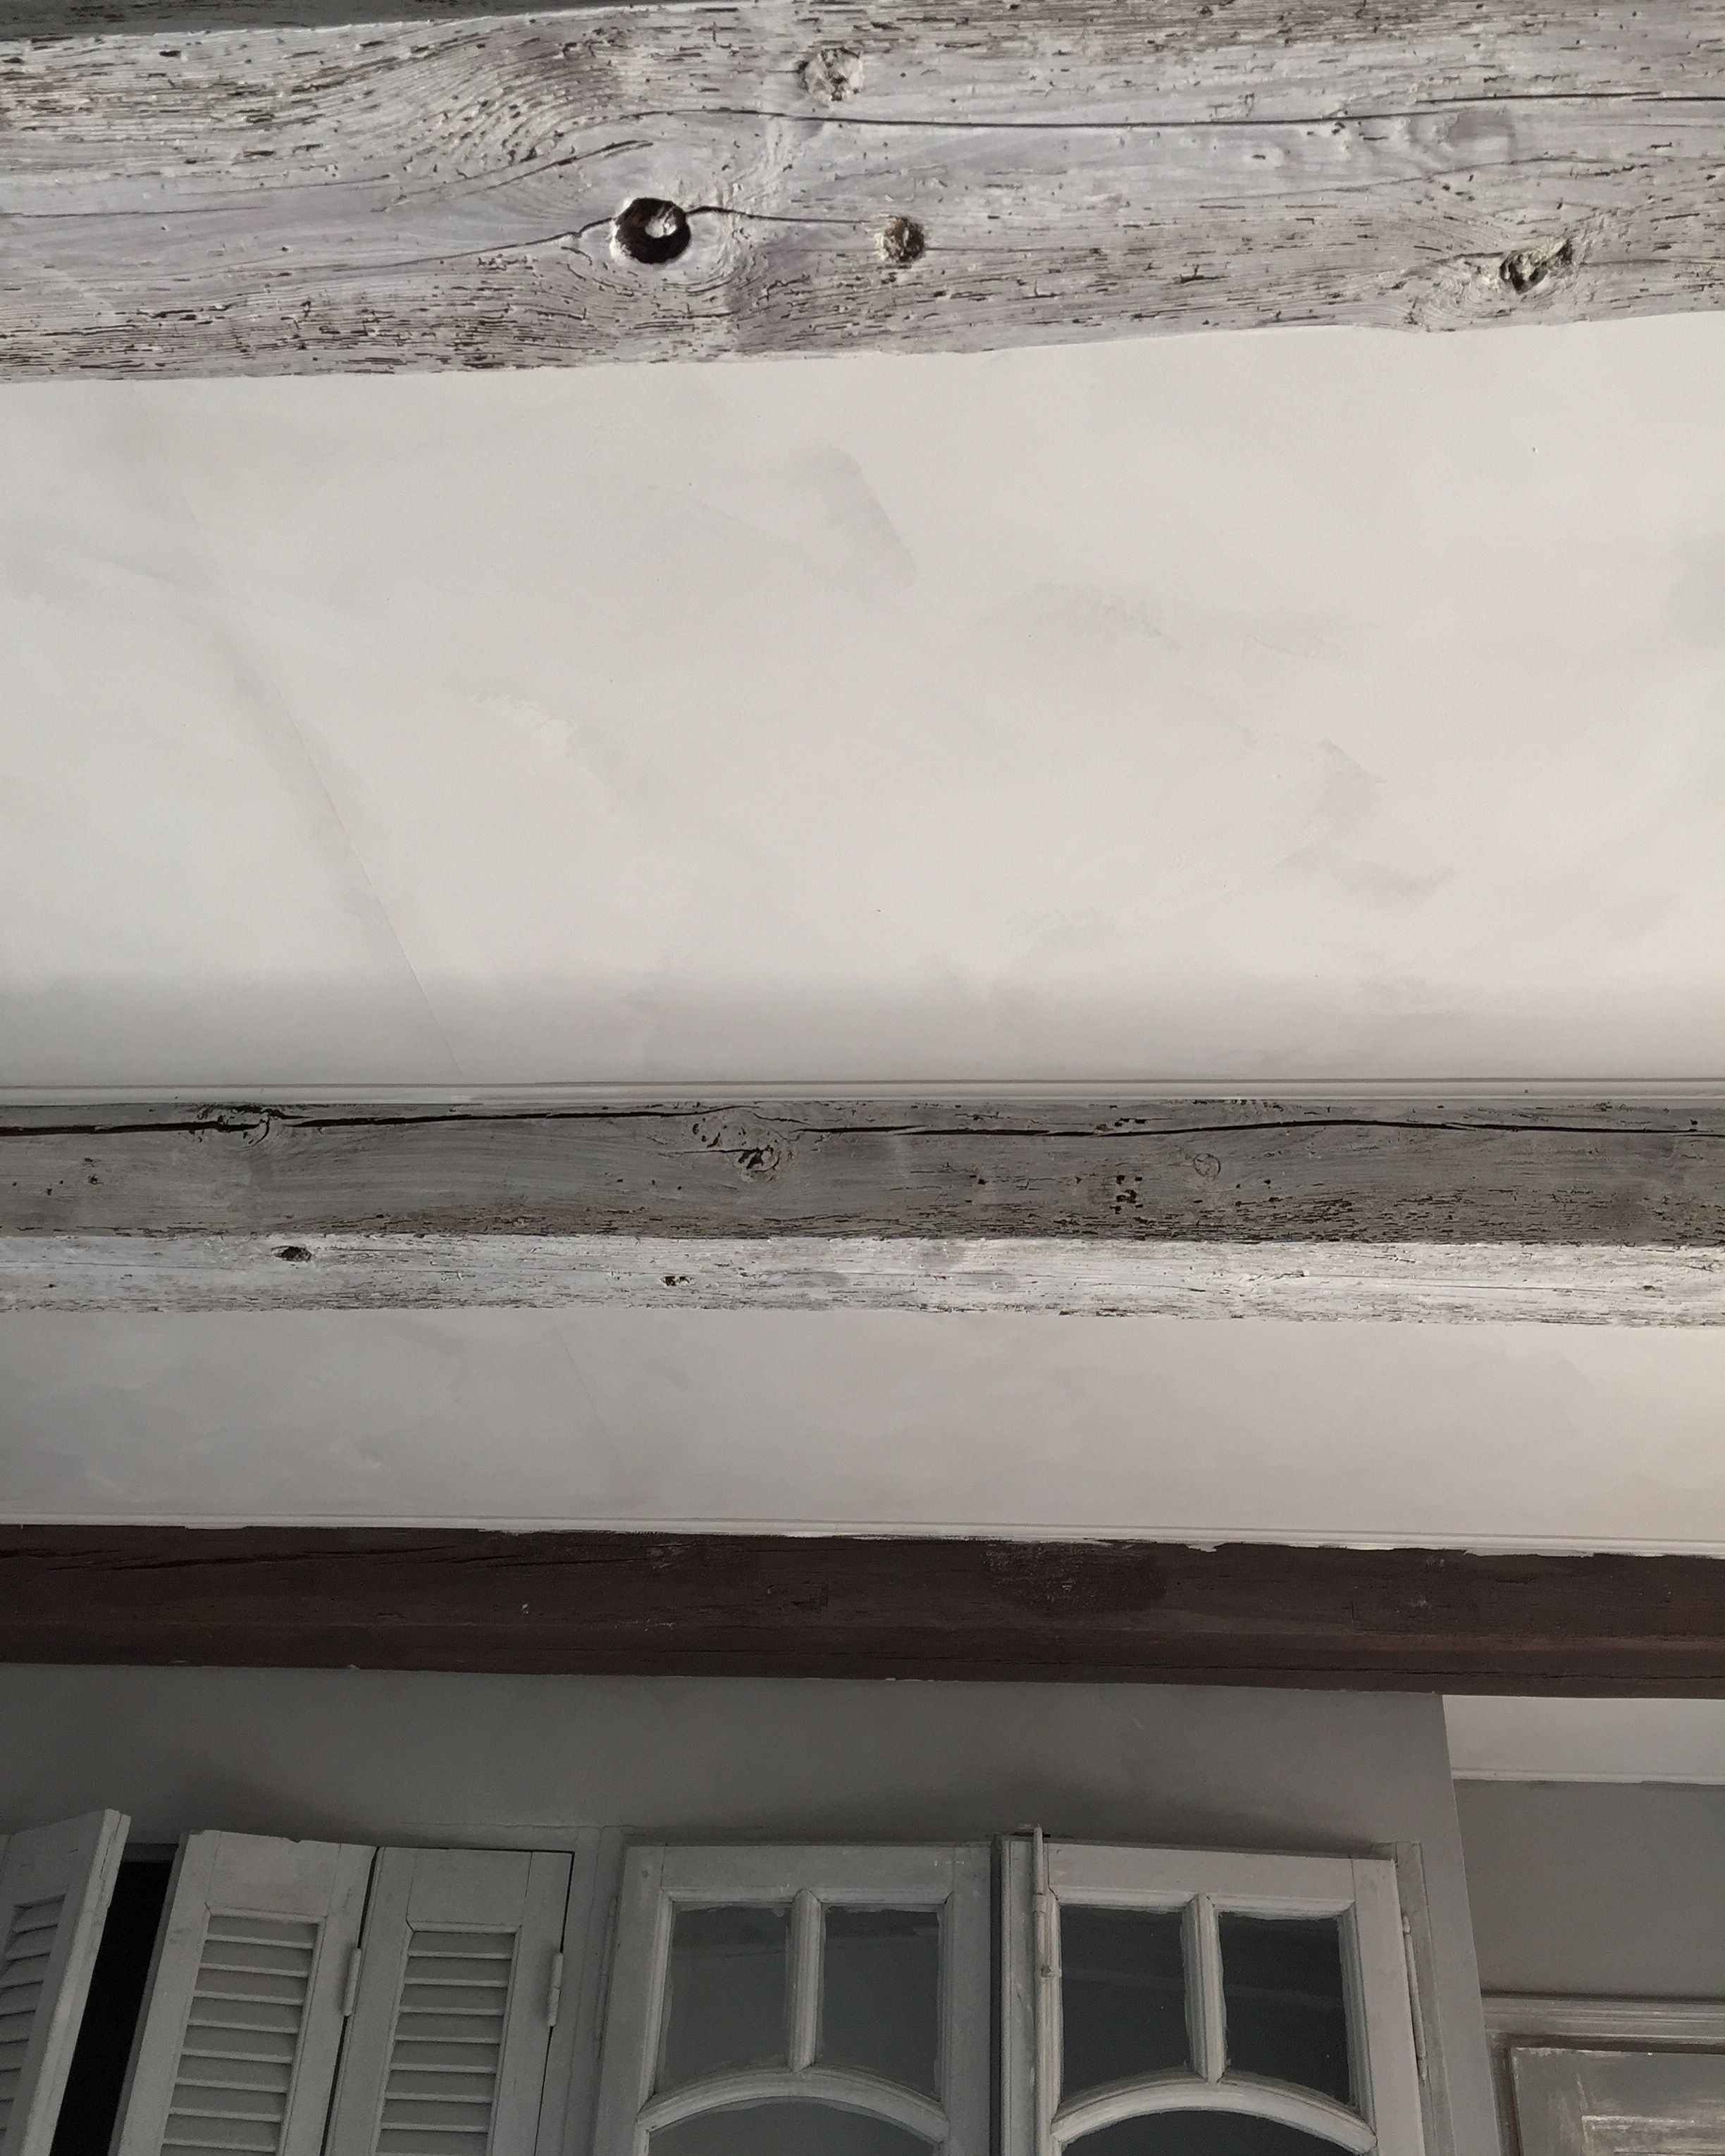 10 Kitchen Cabinets To Ceiling: Limewash On Those Beames :) Ceiling Is Gabbro (x-strokes